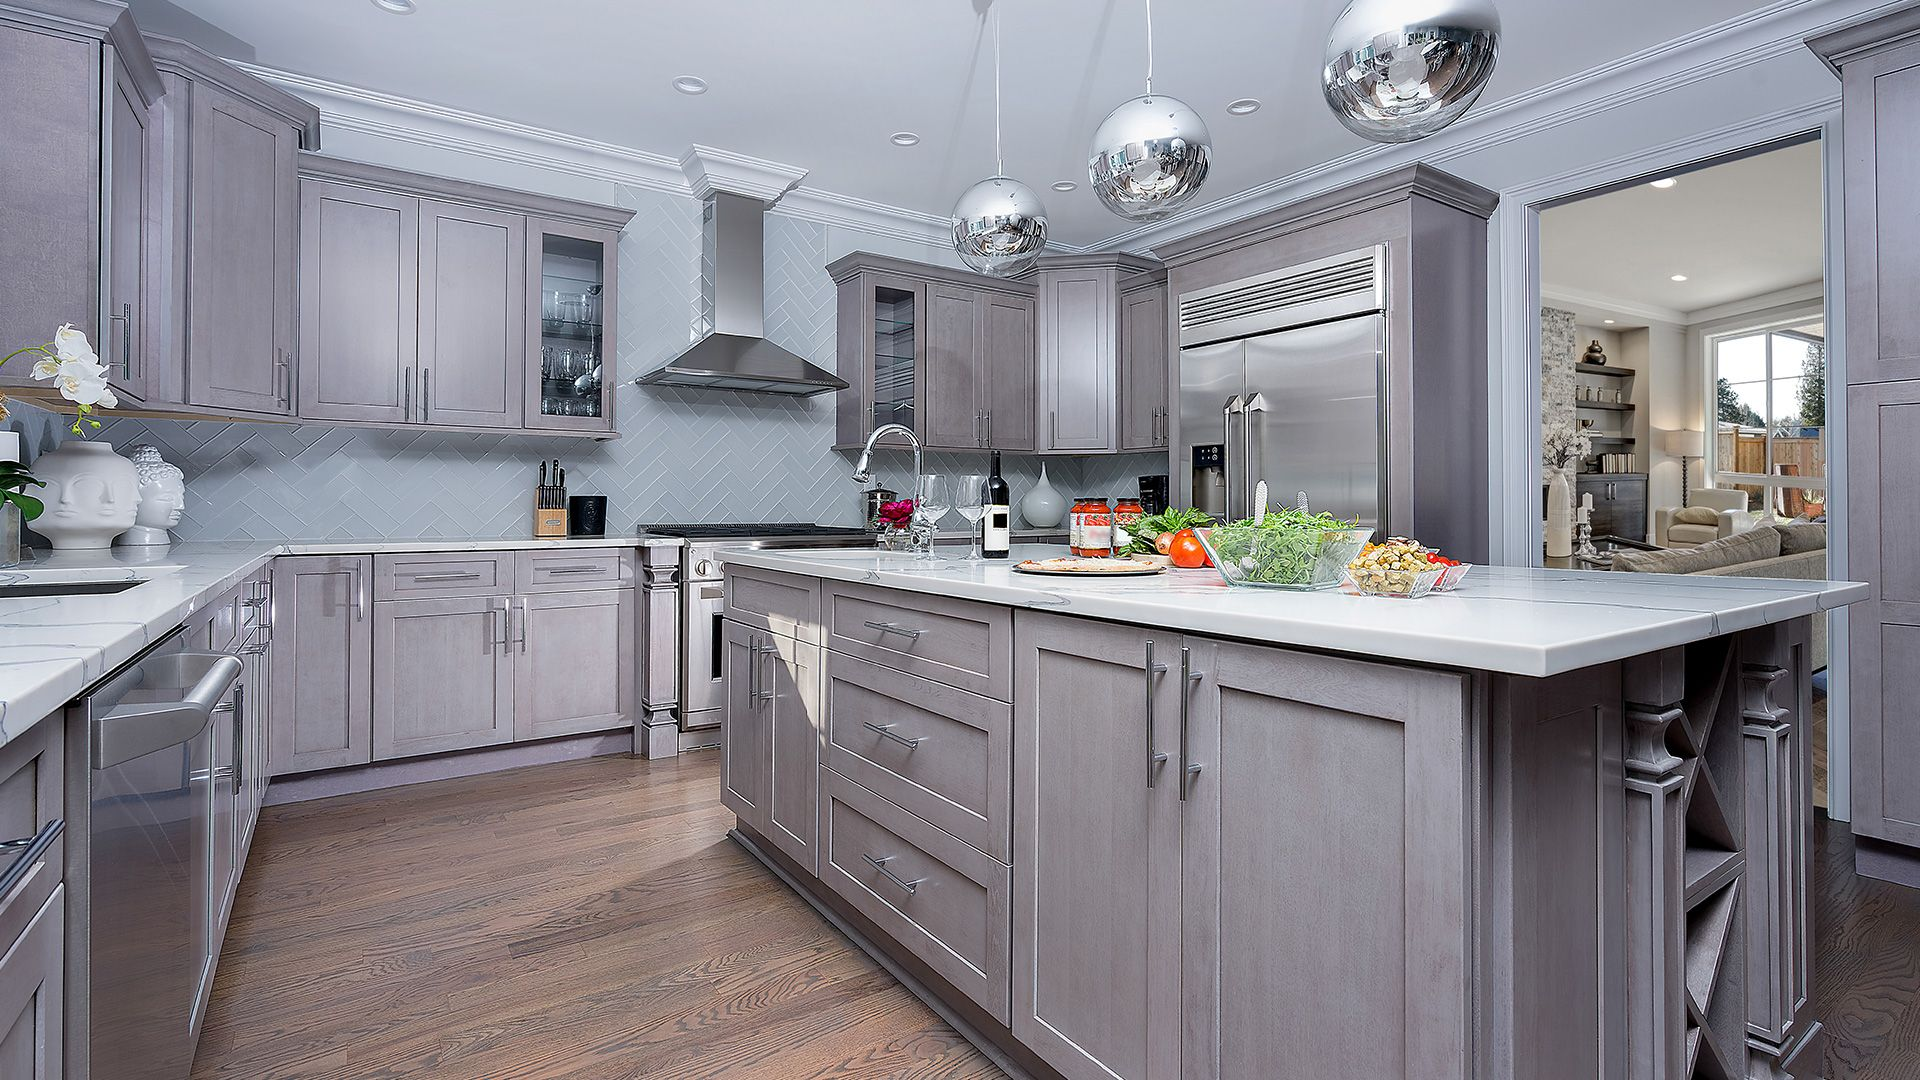 Pin On Cabinetz Topz Best Place To Design And Order Your Kitchen For Affordable Price